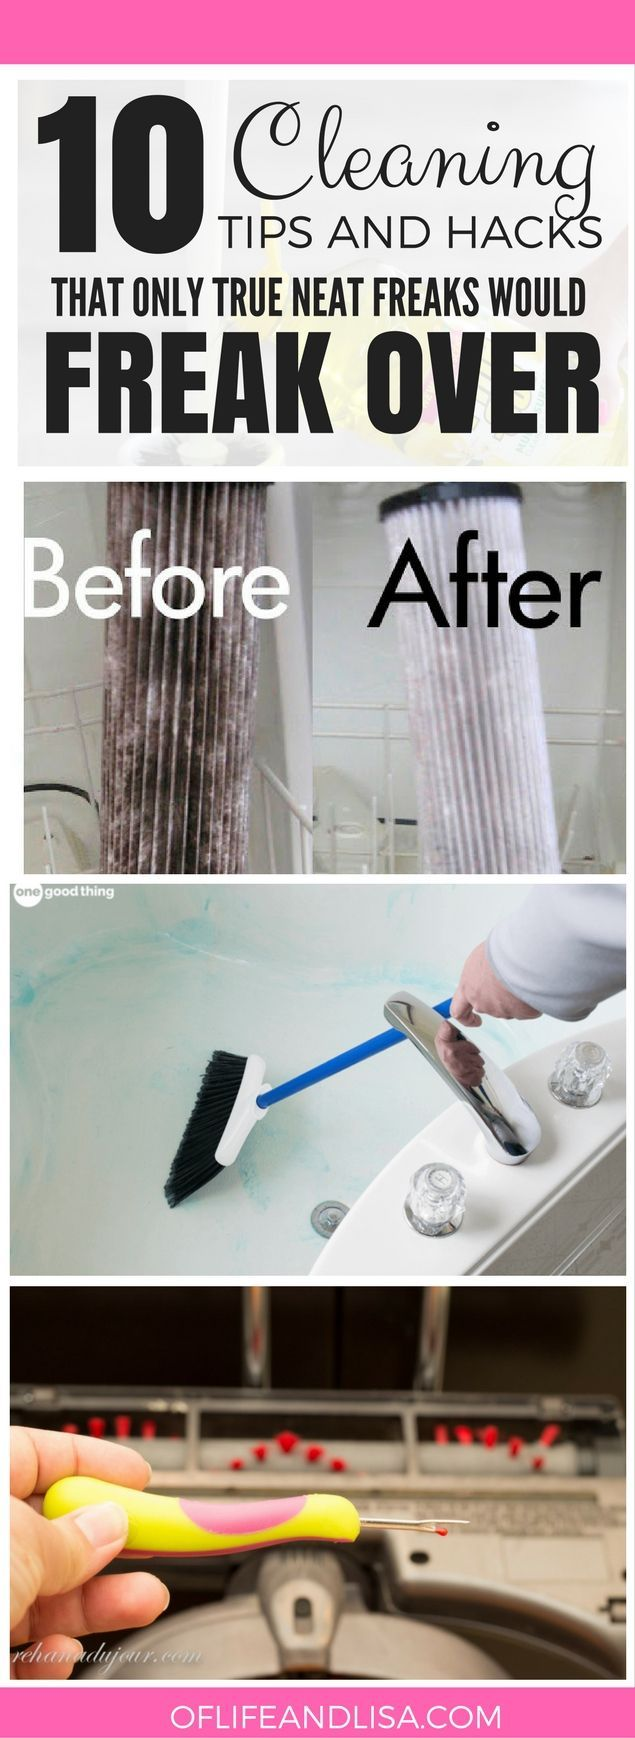 10 Cleaning and Organizing Hacks Thatu0027ll Soothe